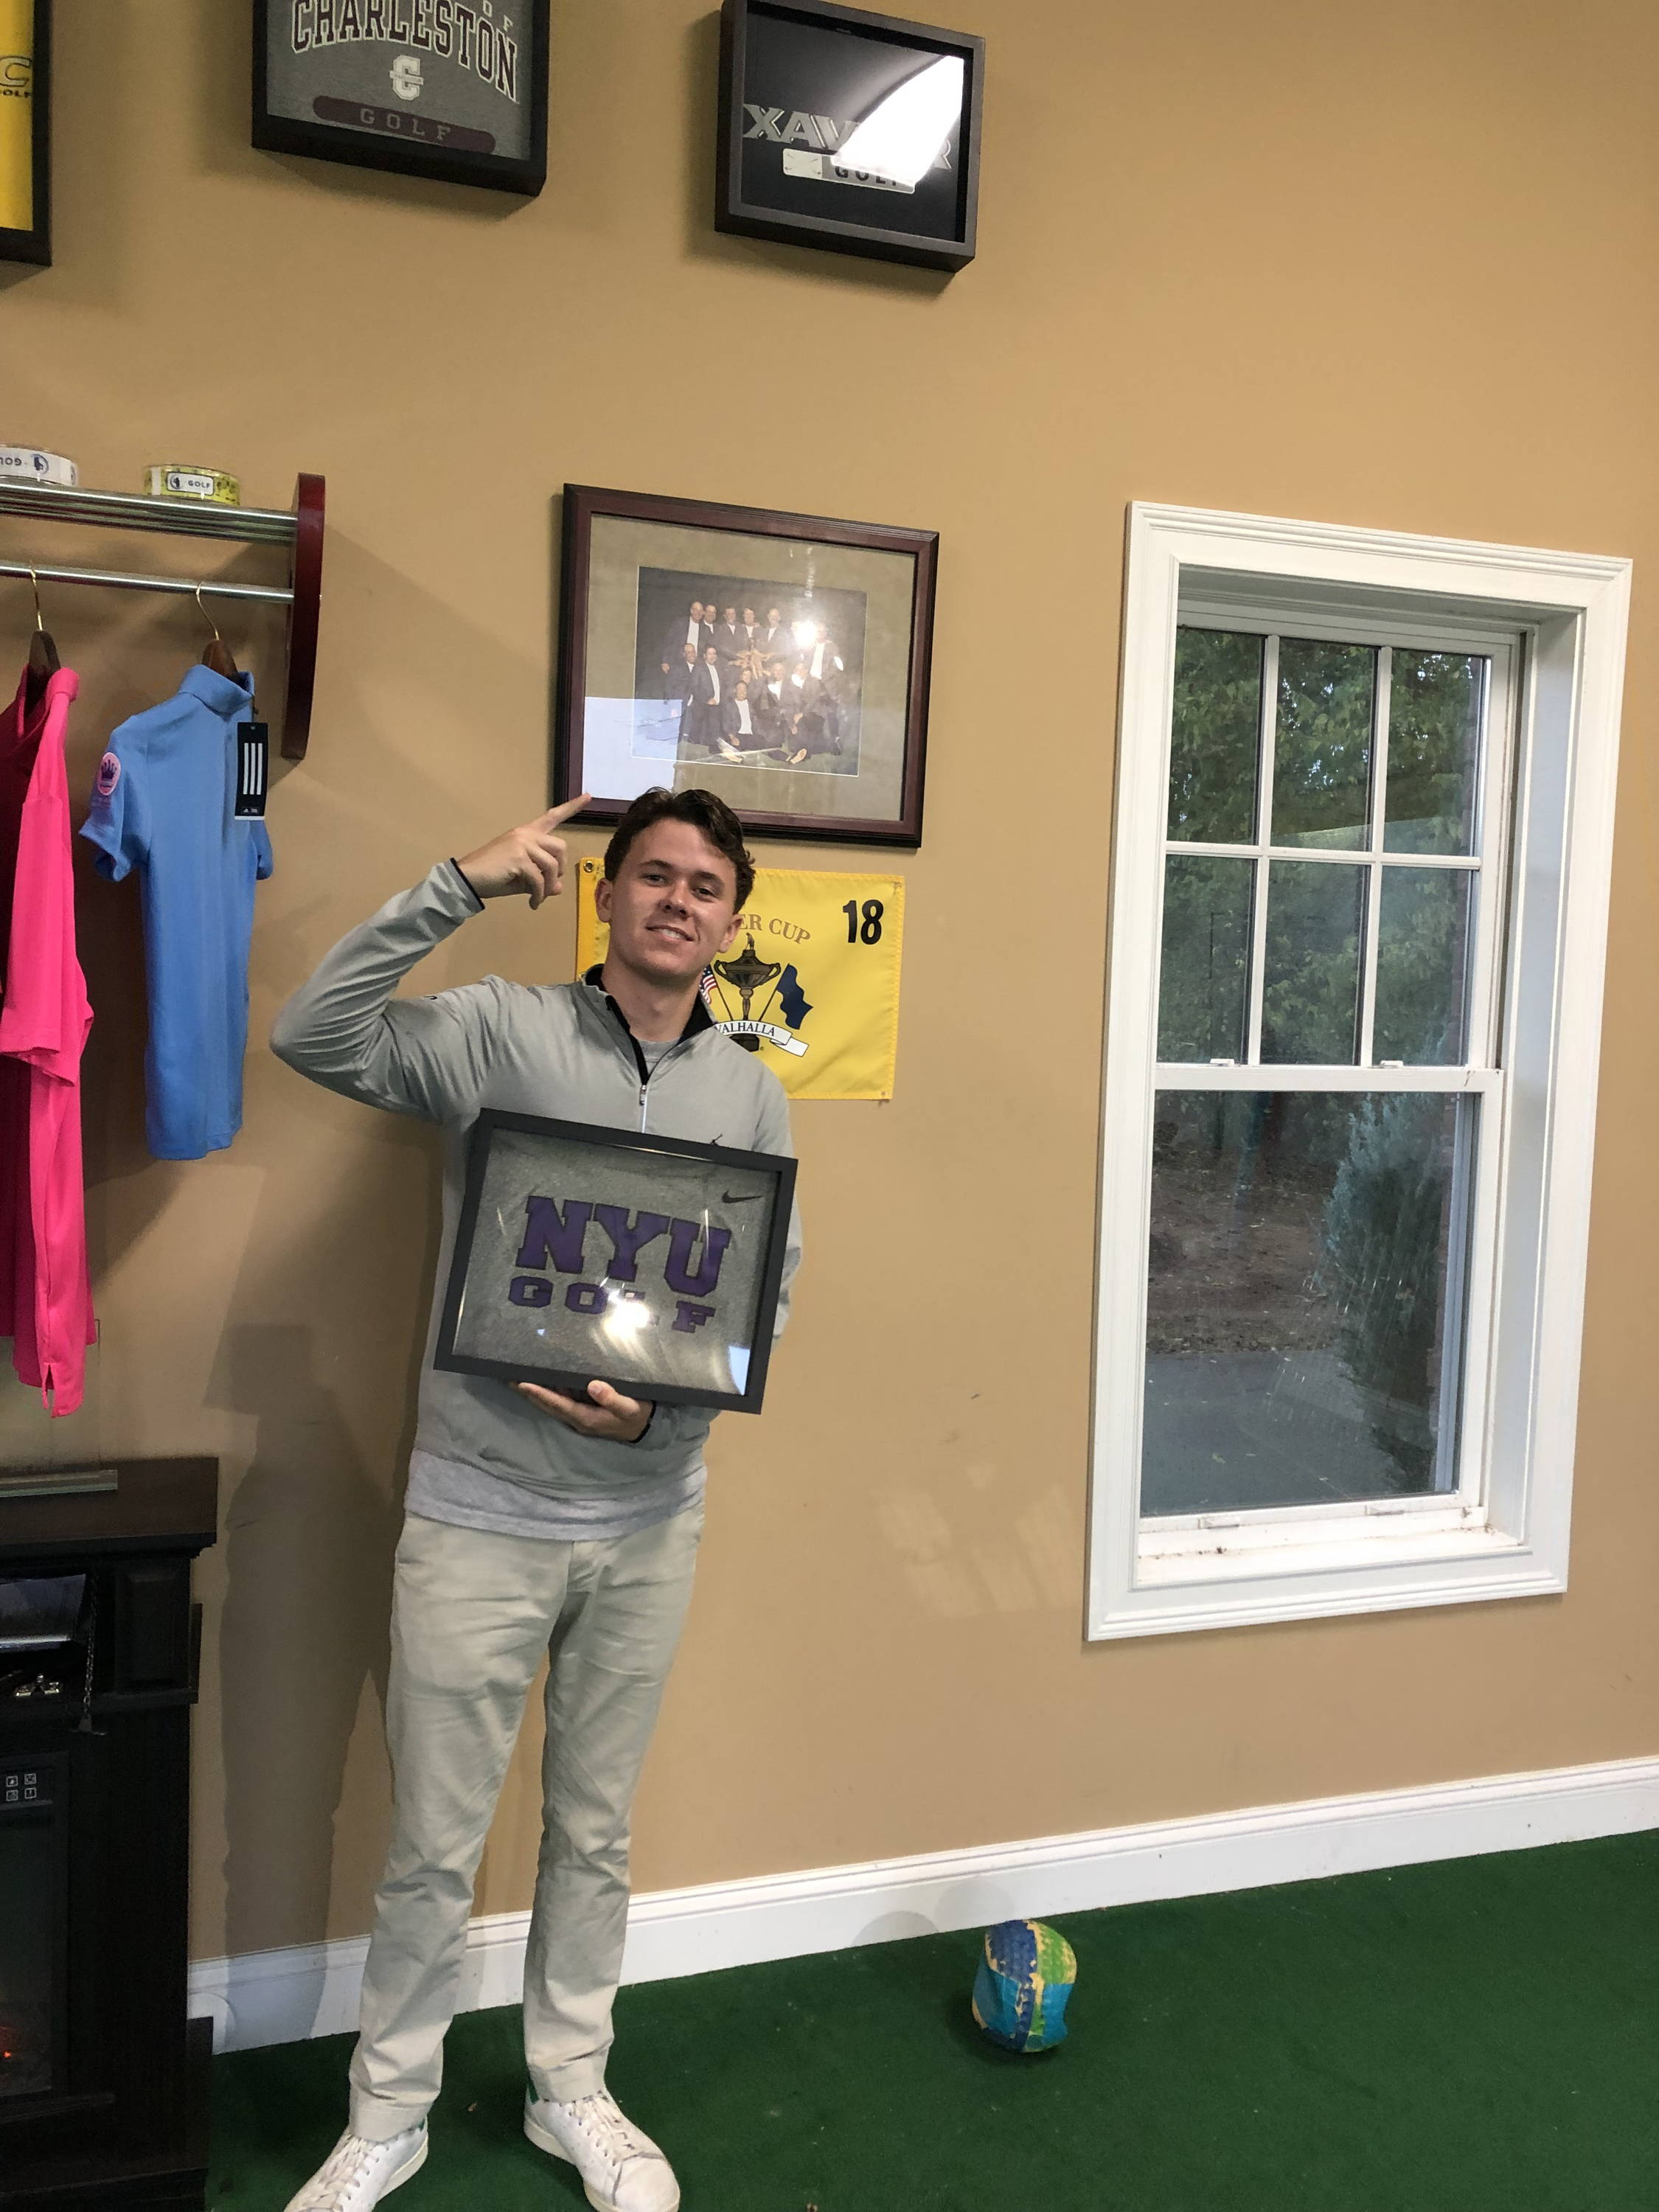 Golfer and Shart.com Customer holding a Shart Original T-Shirt Frame with an NYU Golf team tee shirt